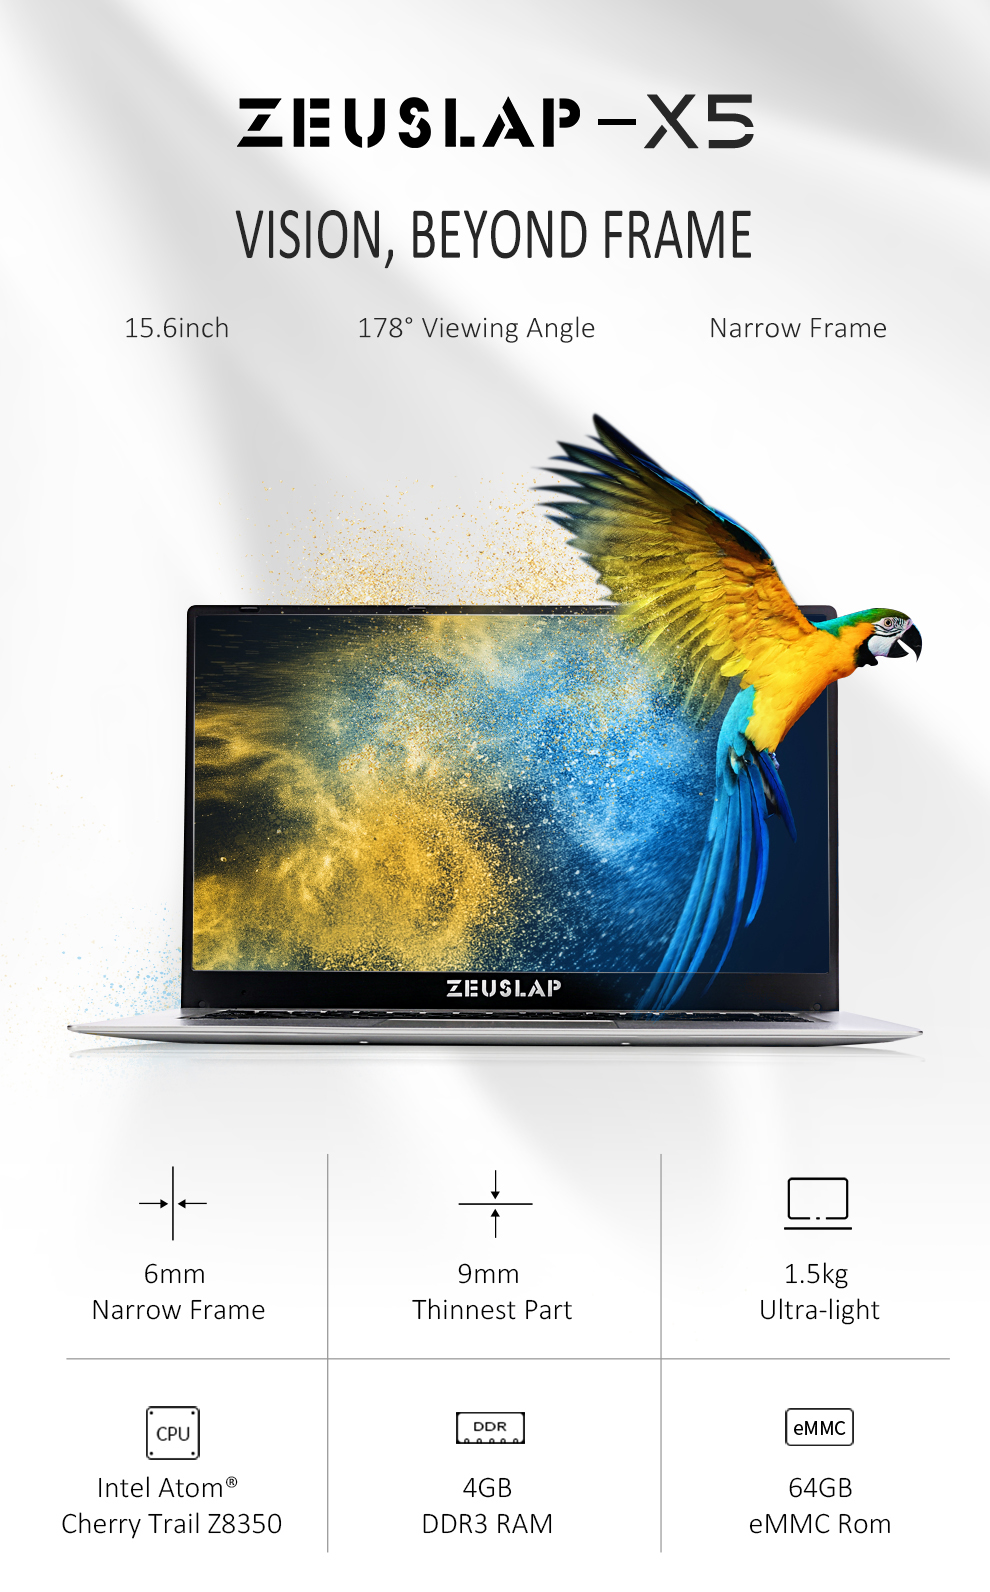 ZEUSLAP 15.6inch Intel Quad Core CPU 4GB Ram 64GB EMMC Windows 10 System 19*1080P IPS Screen Netbook Laptop Notebook Computer 2